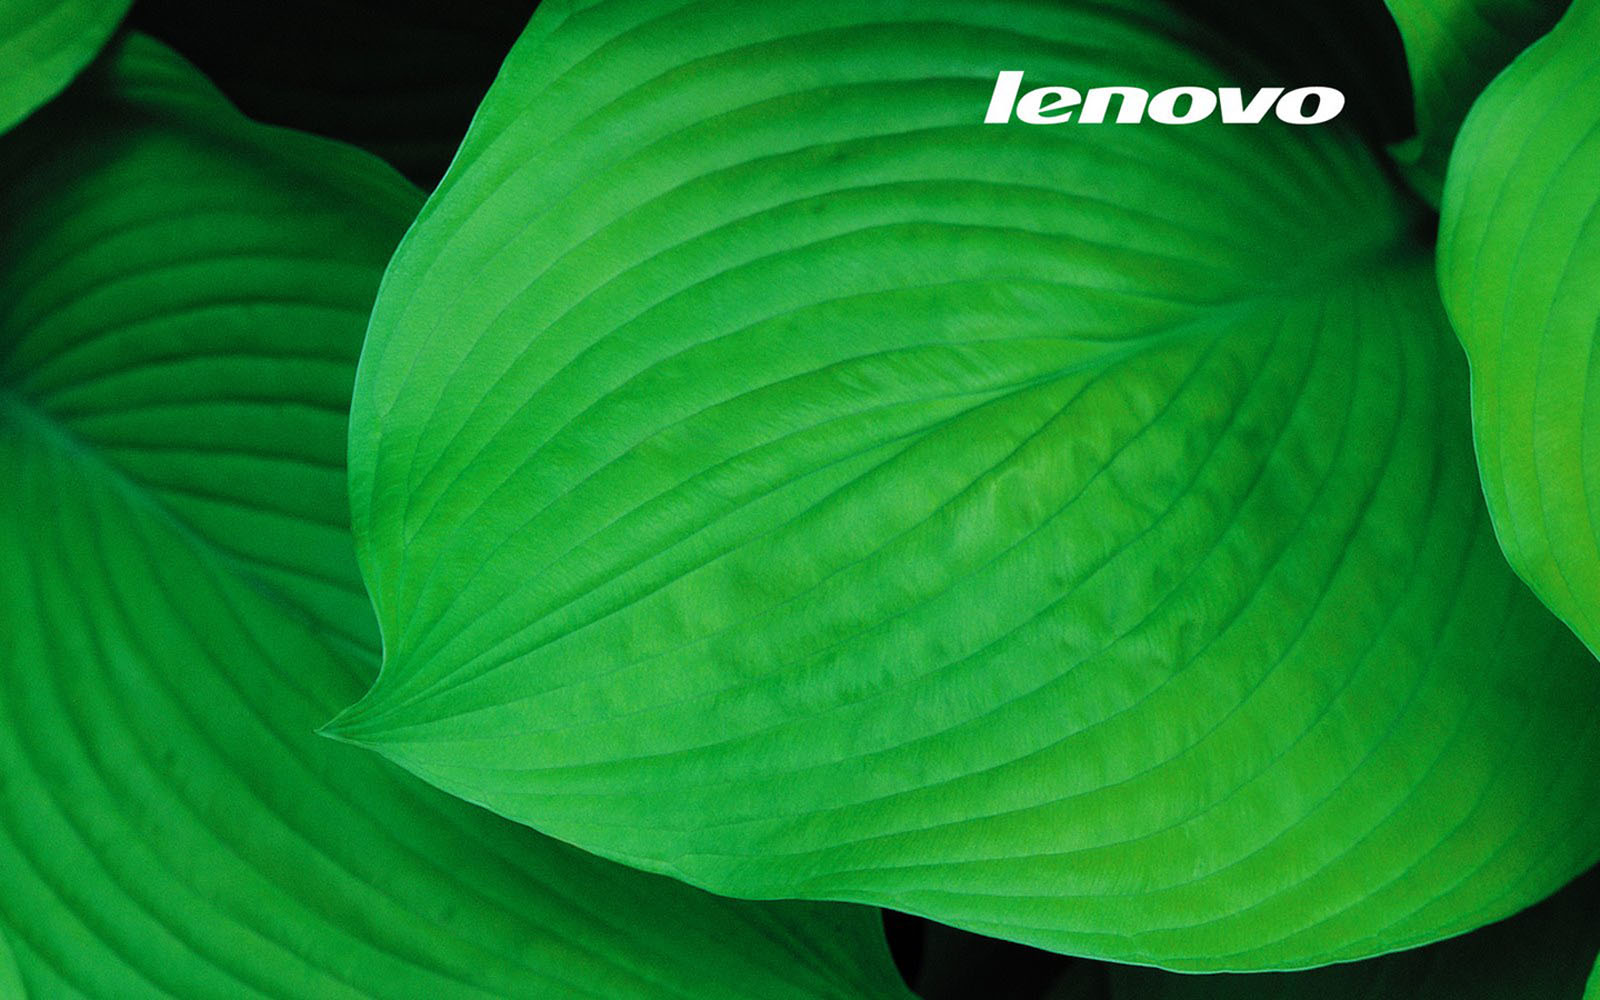 Lenovo Wallpaper Theme: Wallpapers: Lenovo Laptop Wallpapers